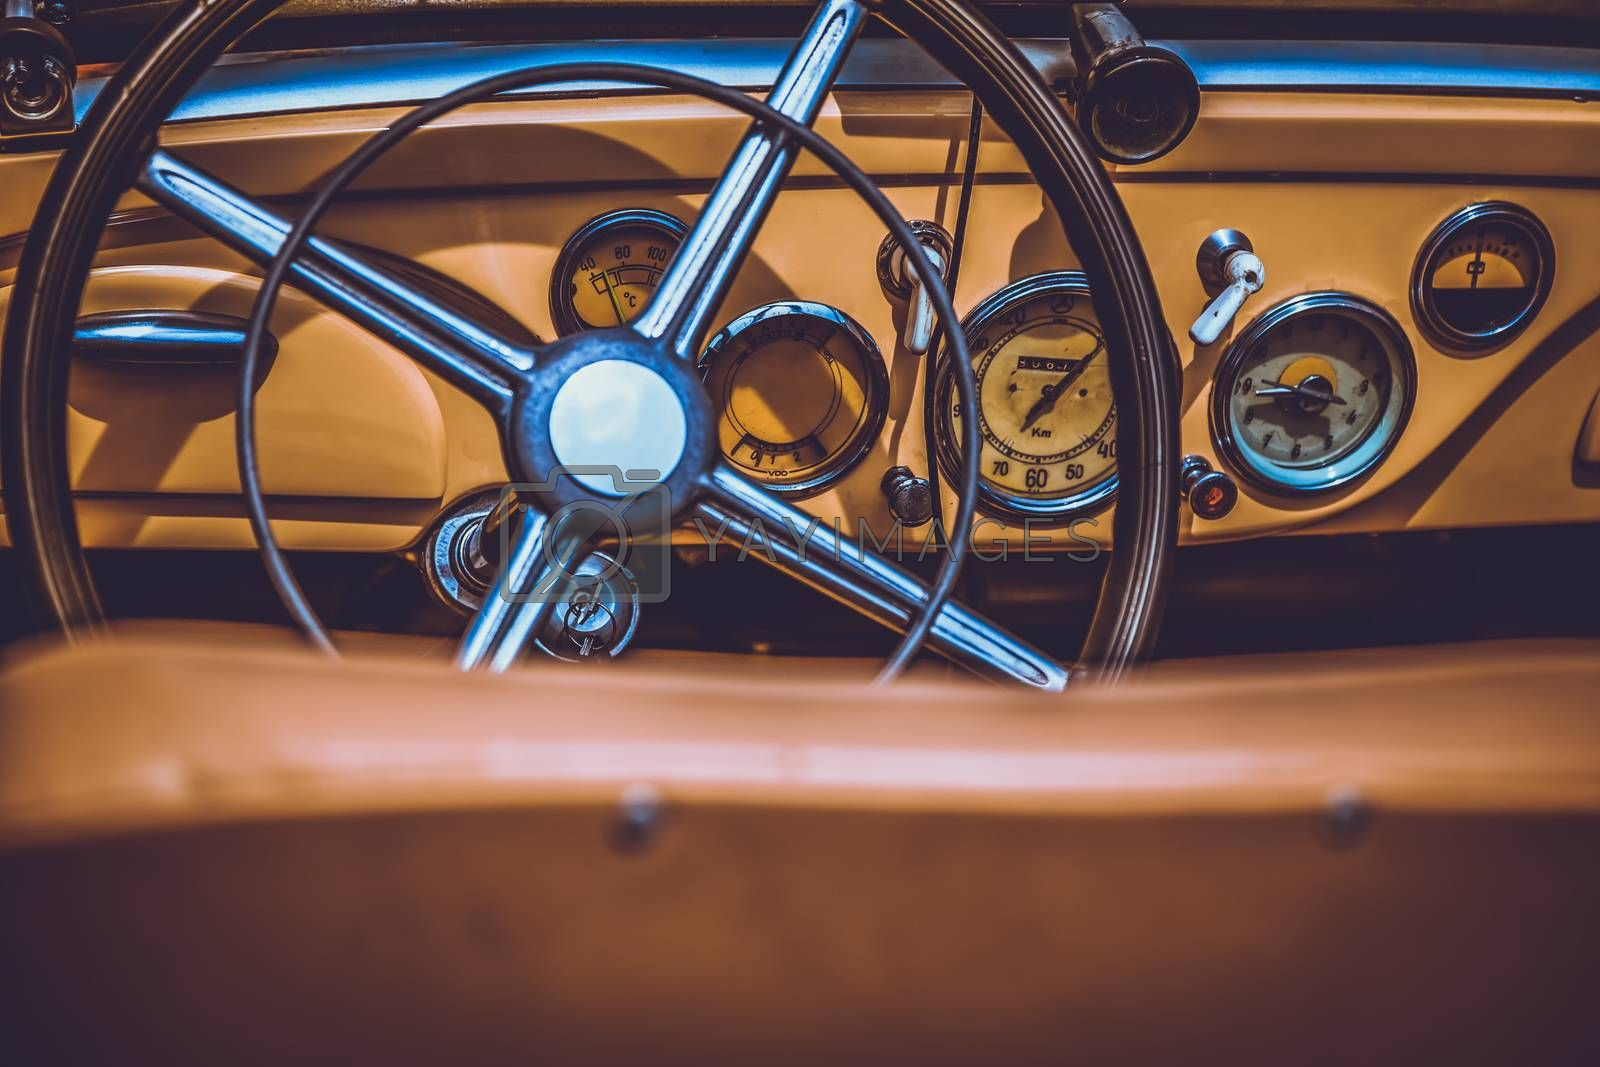 Steering wheel and dashboard in interior of old retro automobile. Processed by vintage or retro effect filter